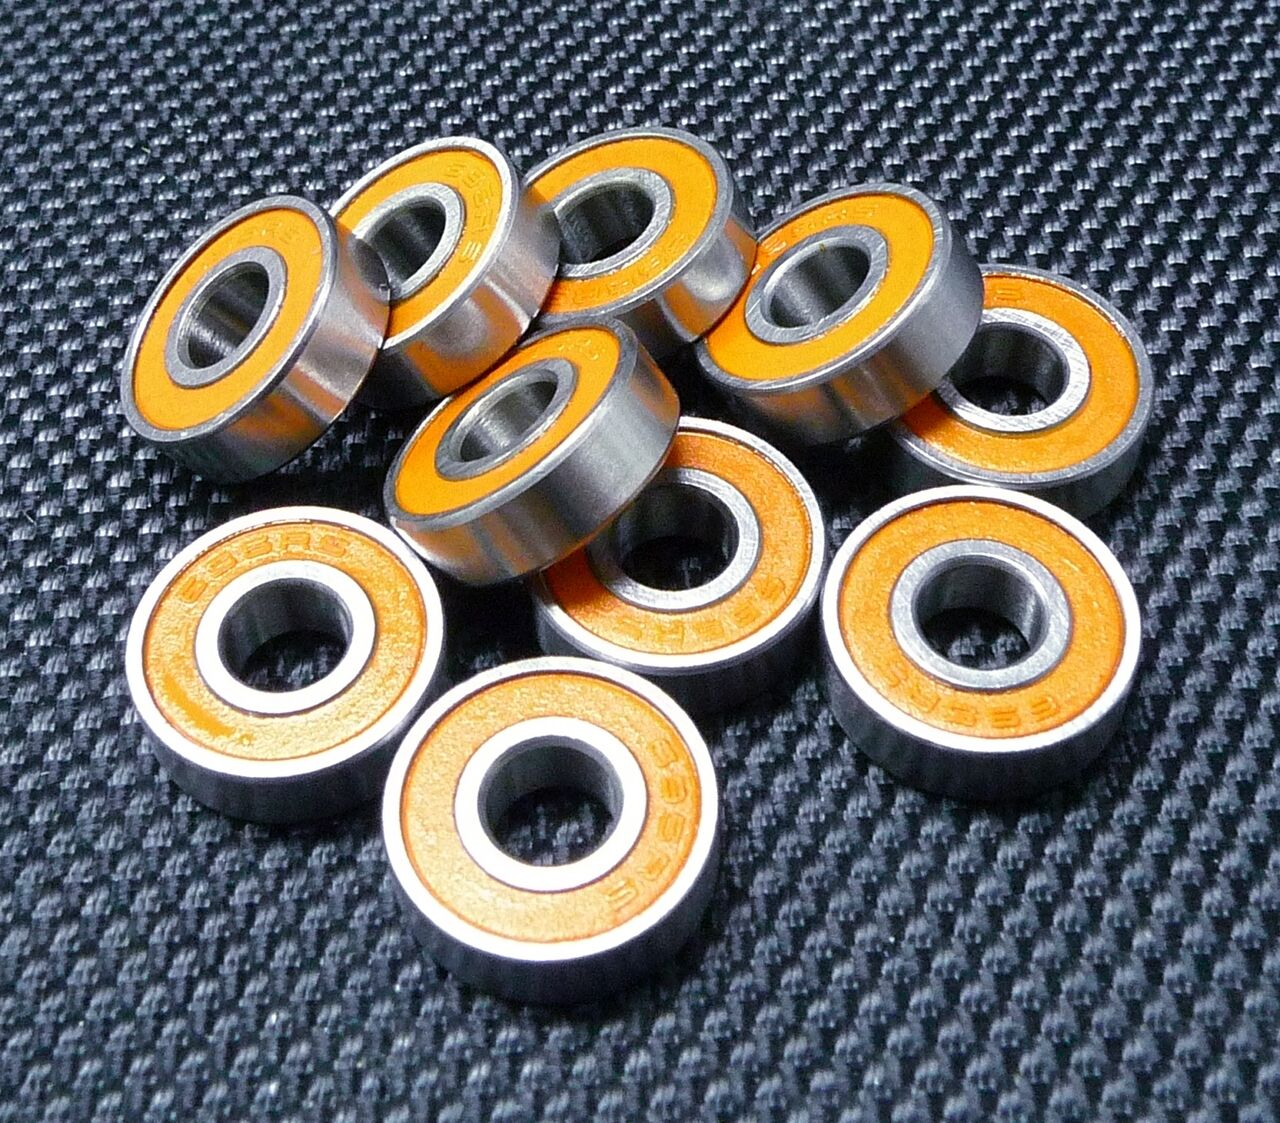 [100 PCS] MR126-2RS (6x12x4 mm) Rubber Ball Bearings Bearing orange 6124